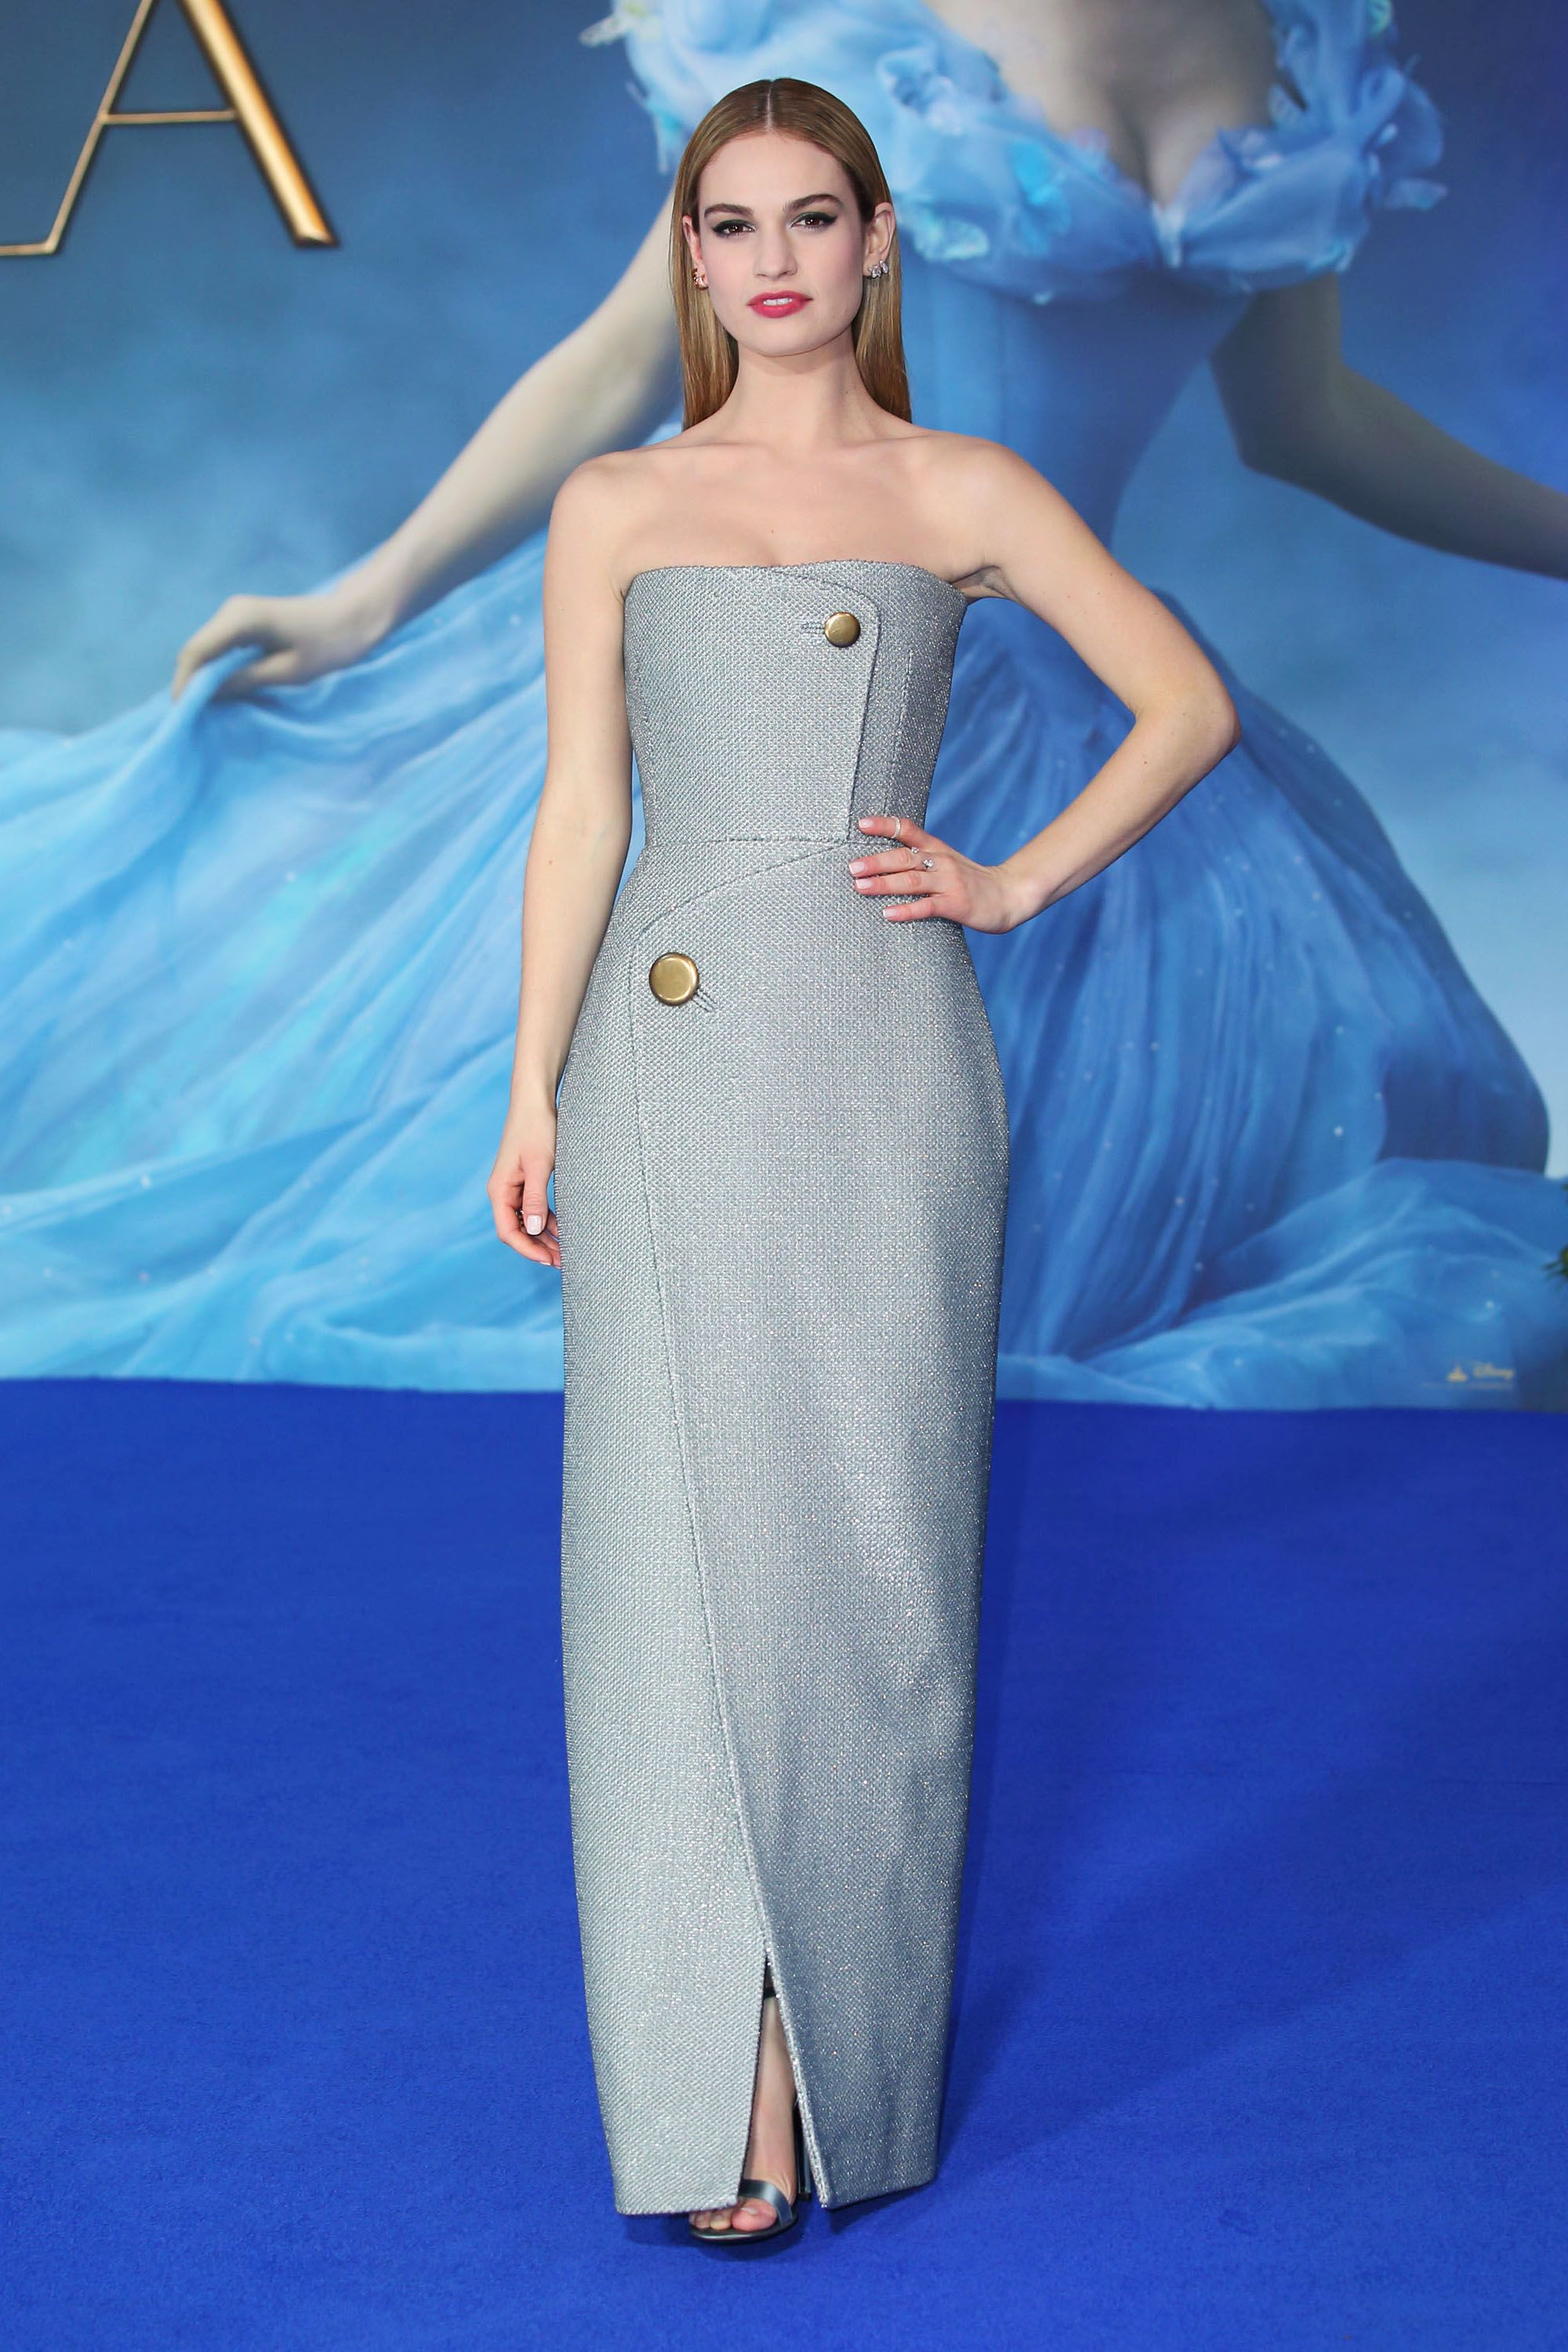 """LONDON, ENGLAND MARCH 19: Lily James attends the UK Premiere of """"Cinderella"""" at Odeon Leicester Square on March 19, 2015 in London, England. (Photo by Mike Marsland/WireImage)"""